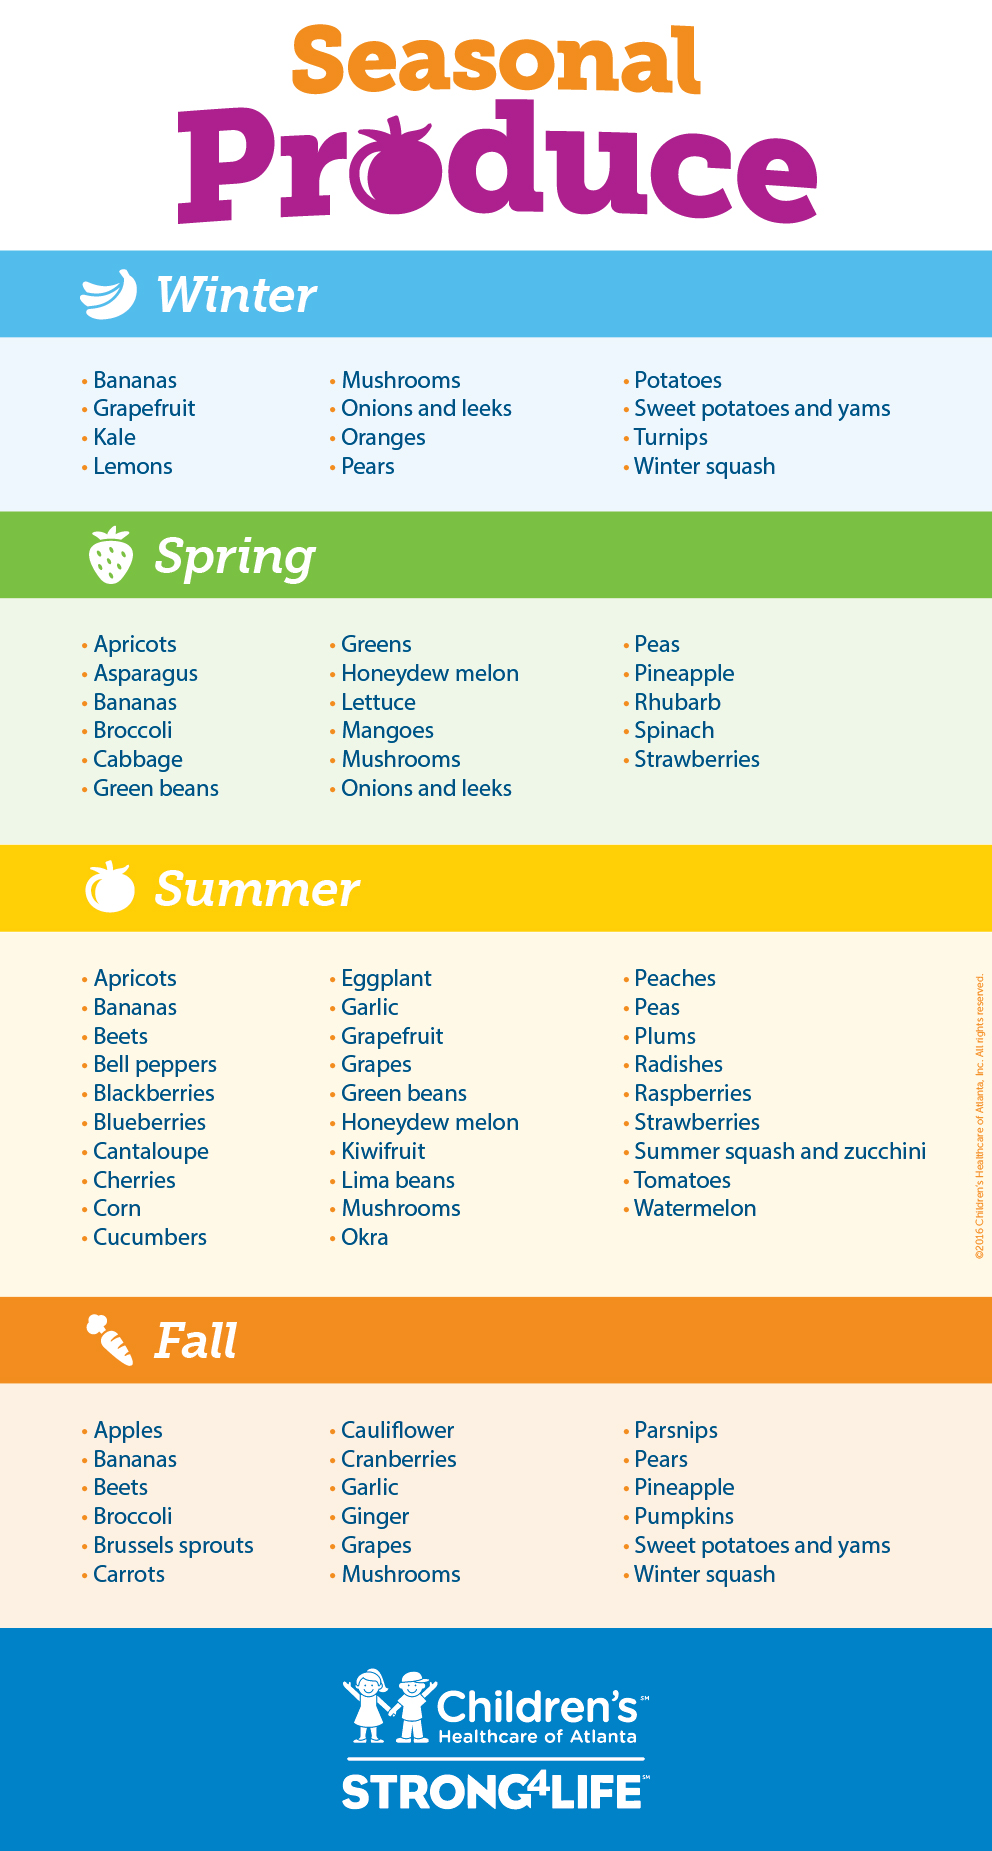 Seasonal Produce infographic